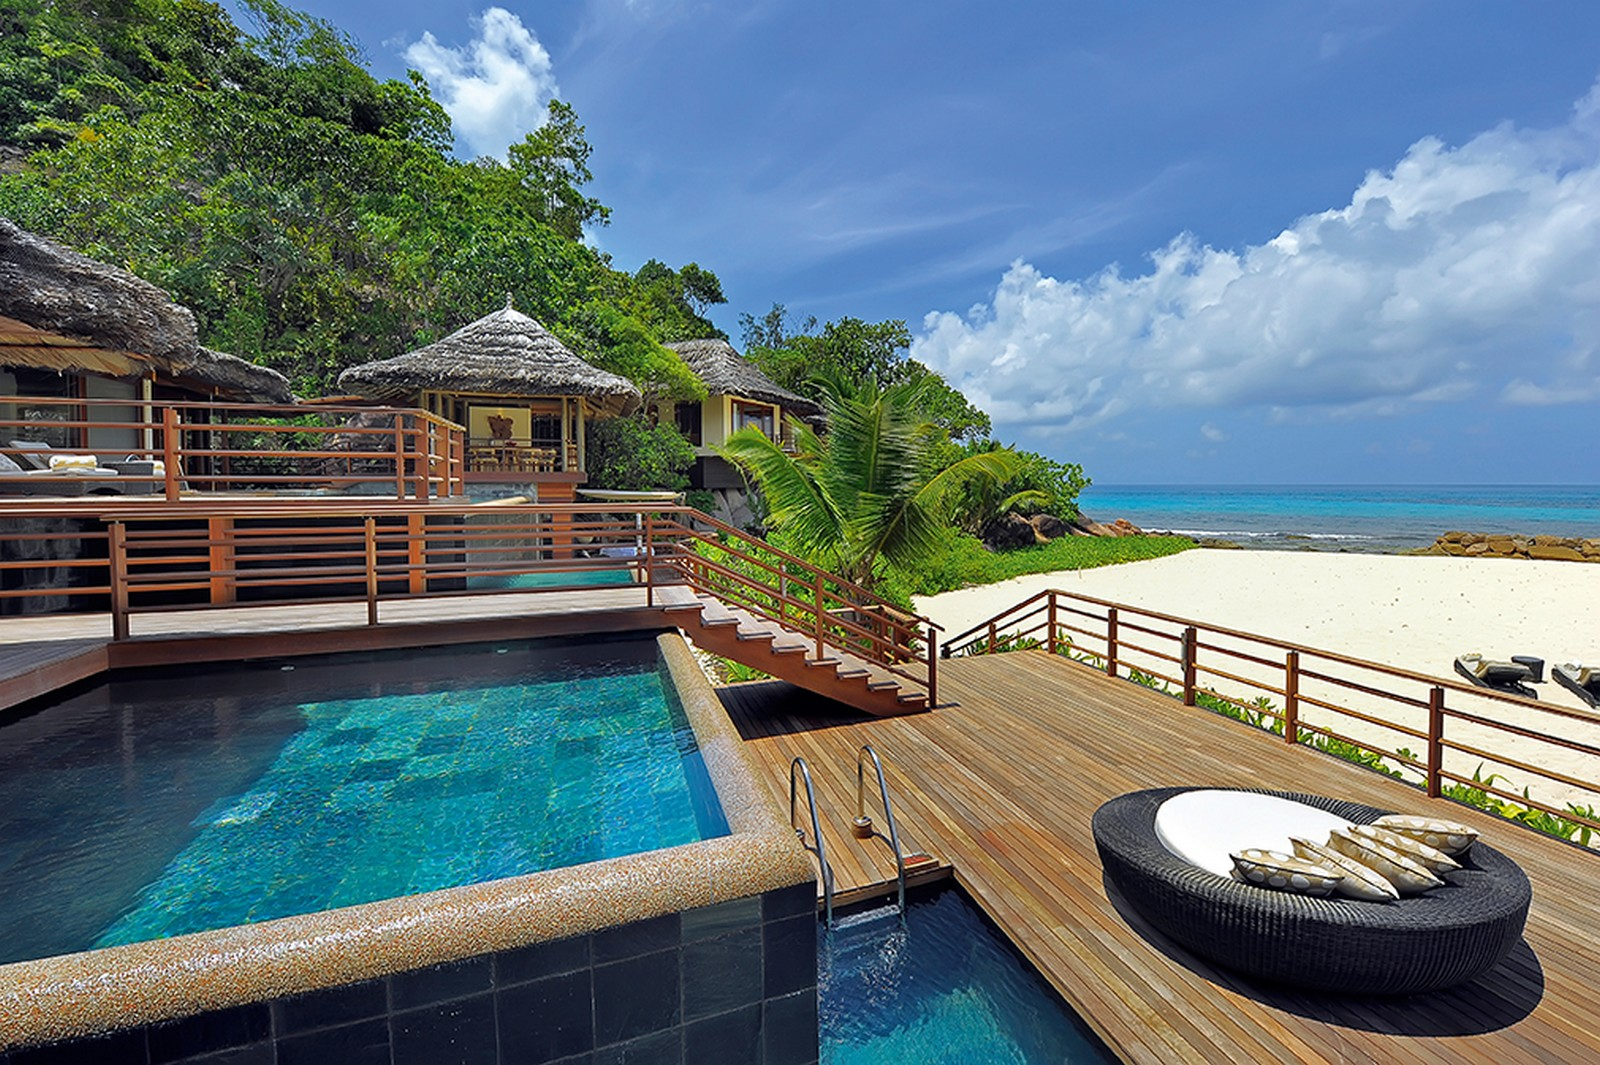 Gtspirit luxury lifestyle trip india seychelles south africa for Villa de jardin mahe seychelles